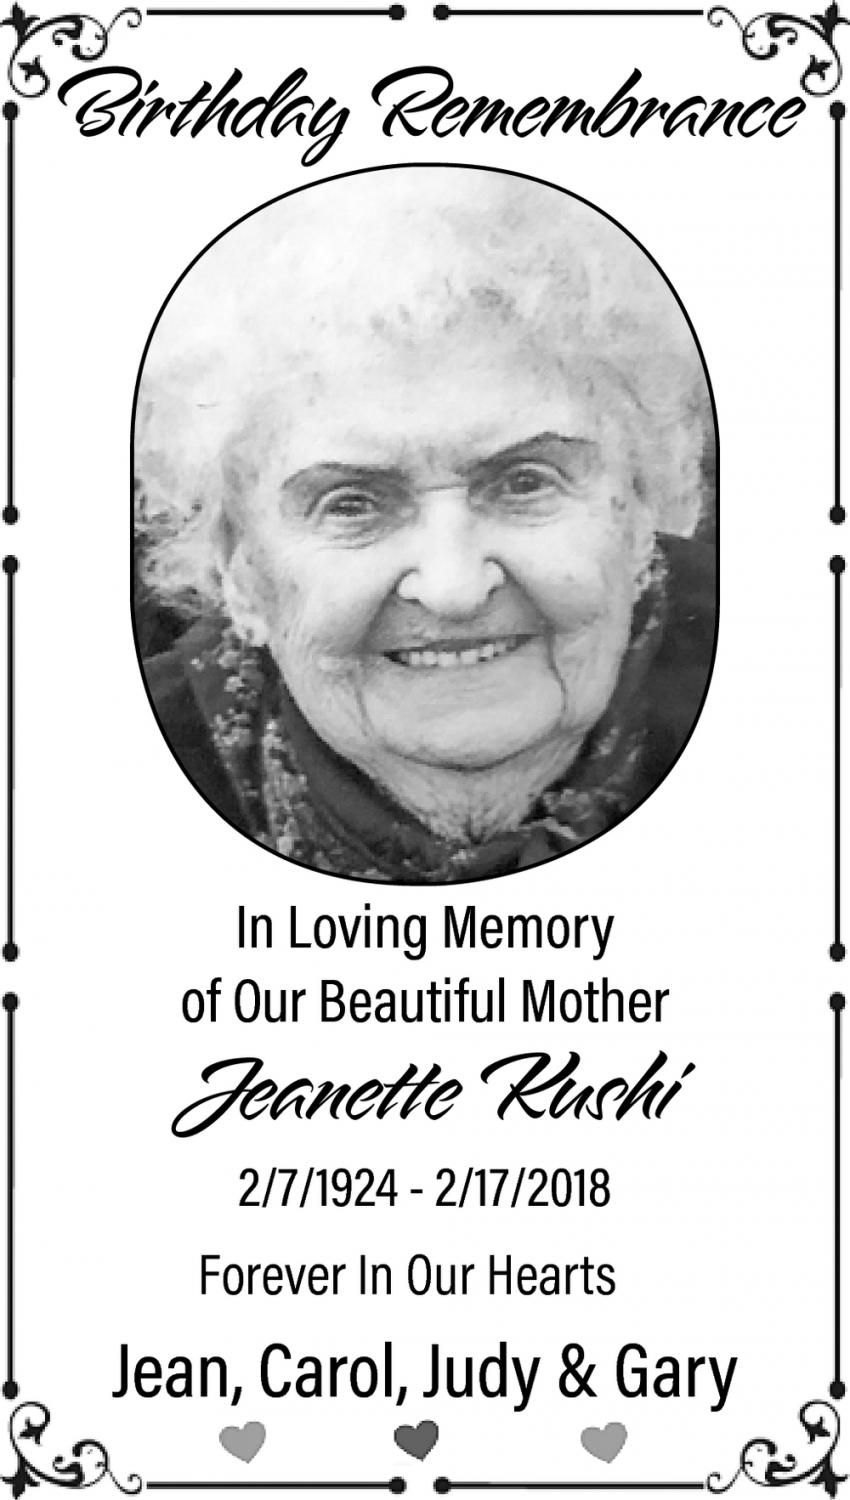 In Memory Of Jeanette Kushi